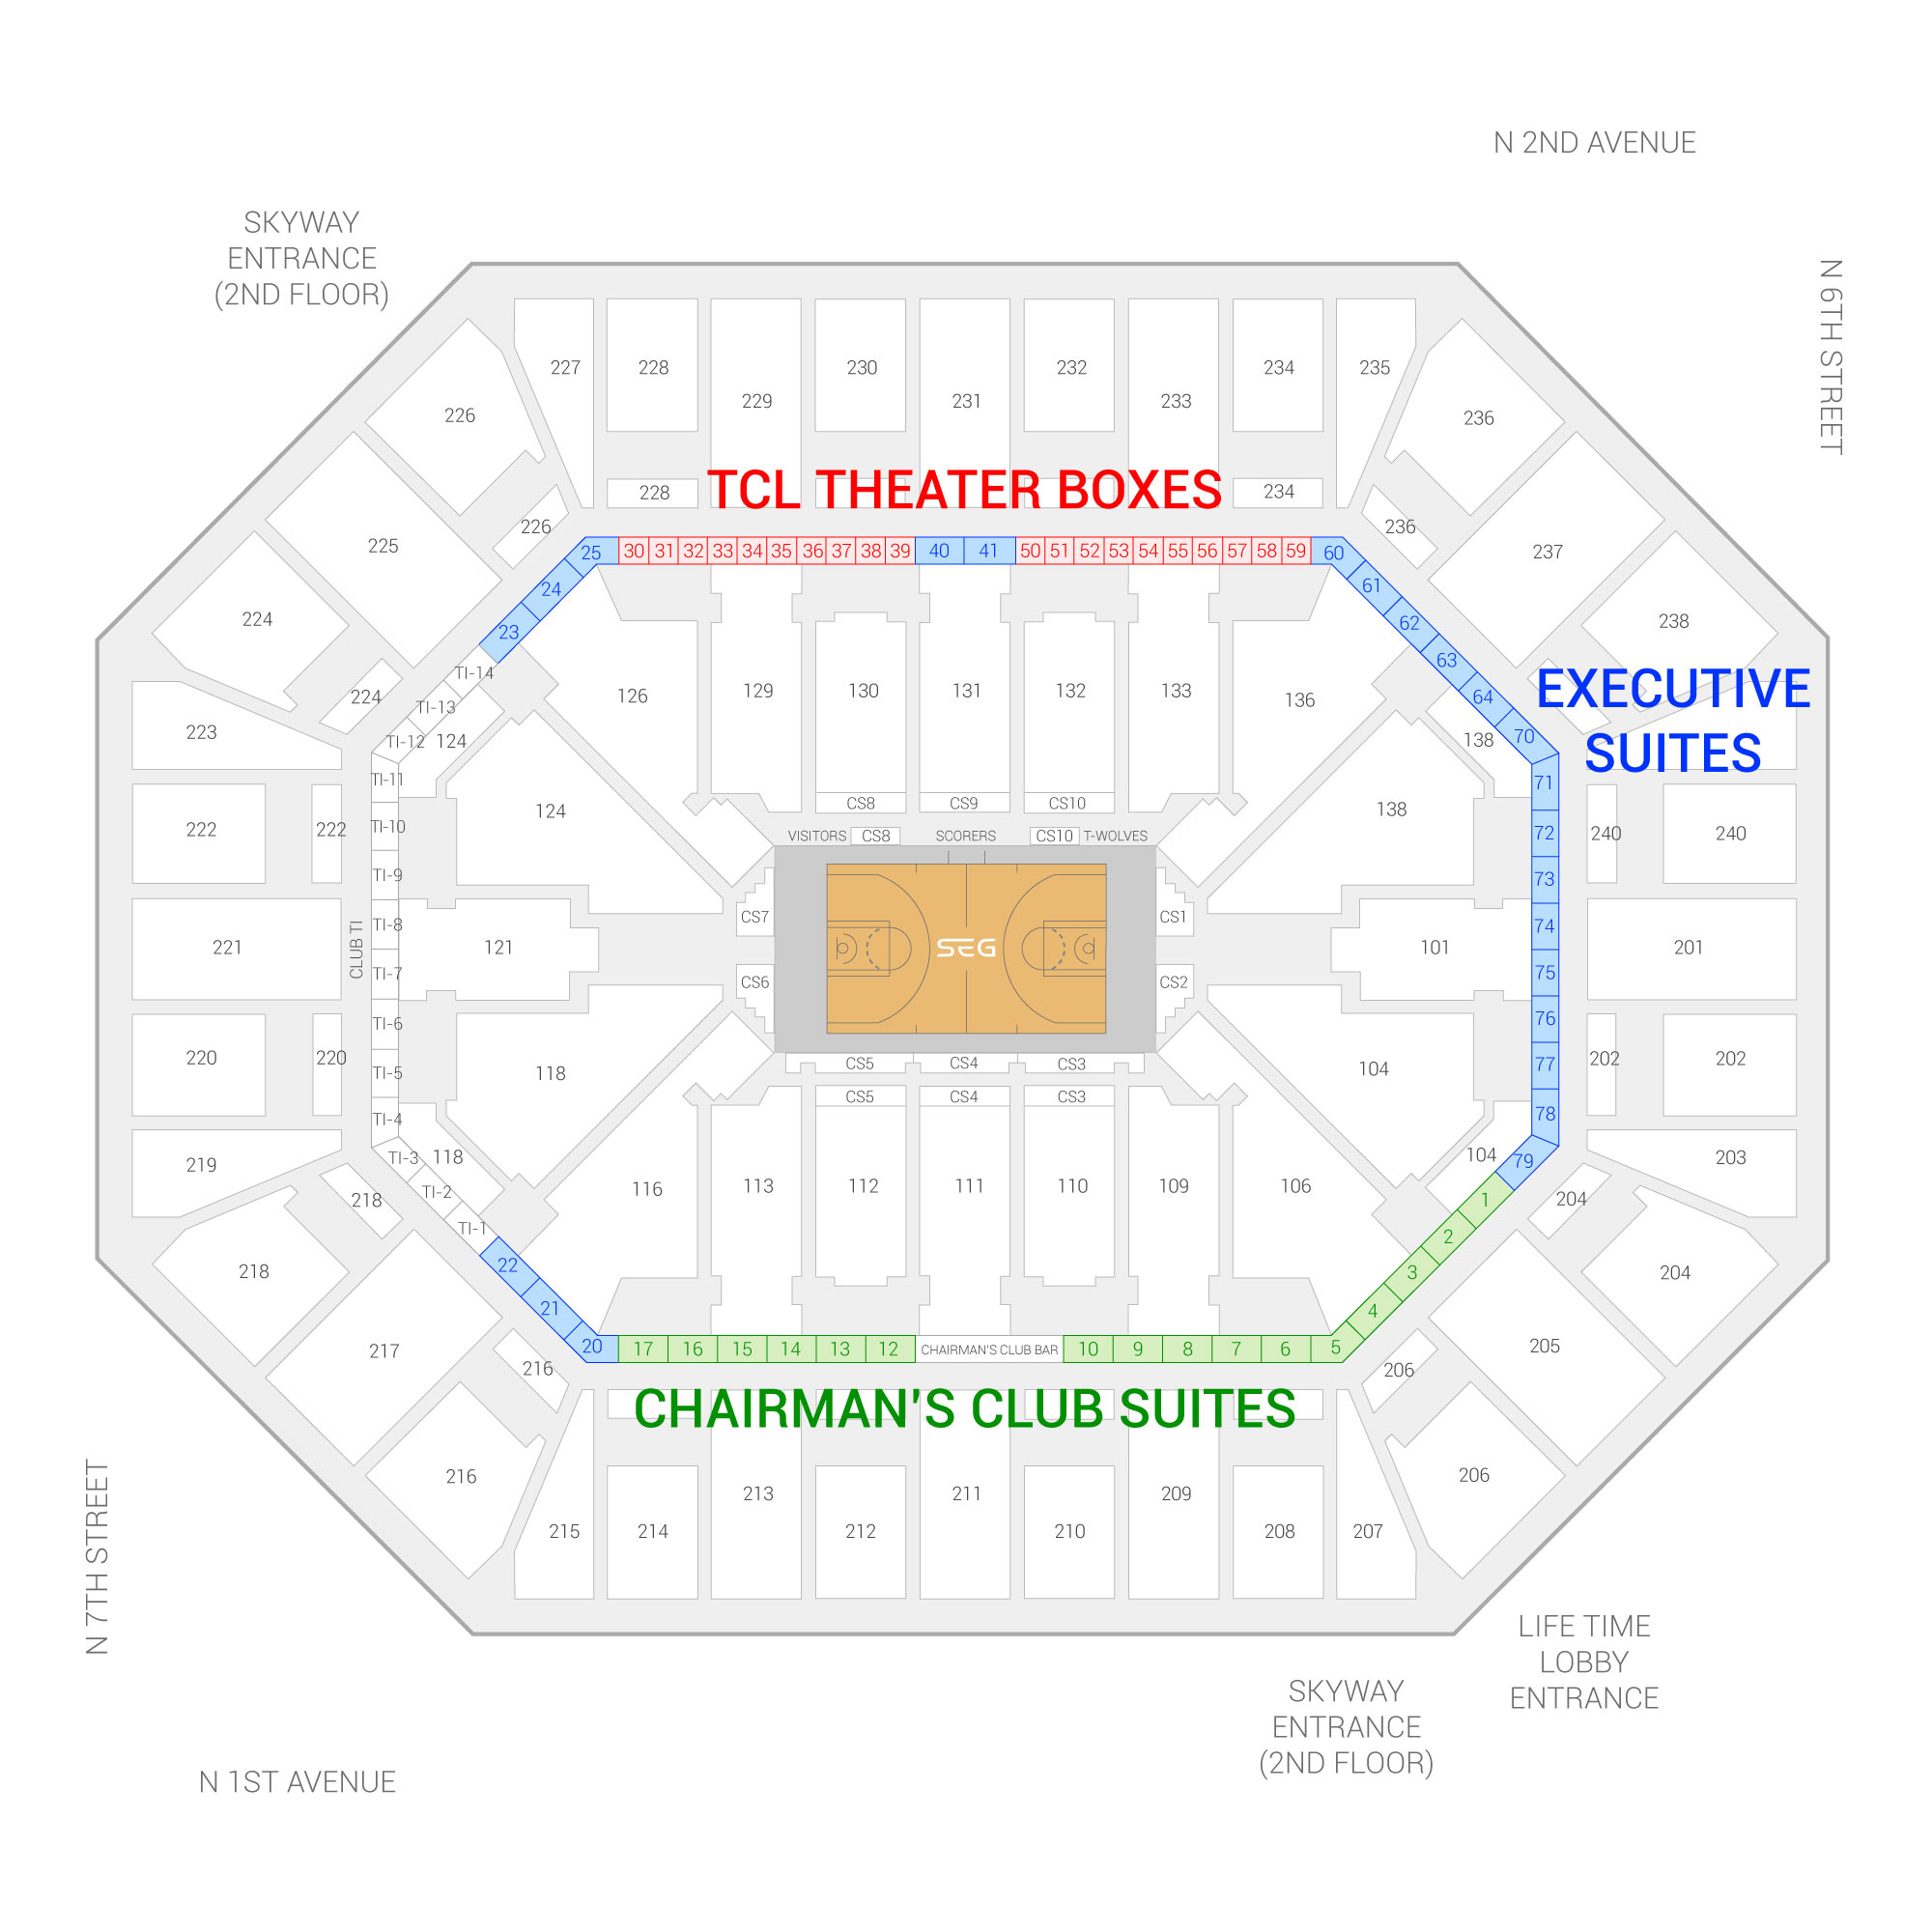 Target Center / Minnesota Timberwolves Suite Map and Seating Chart